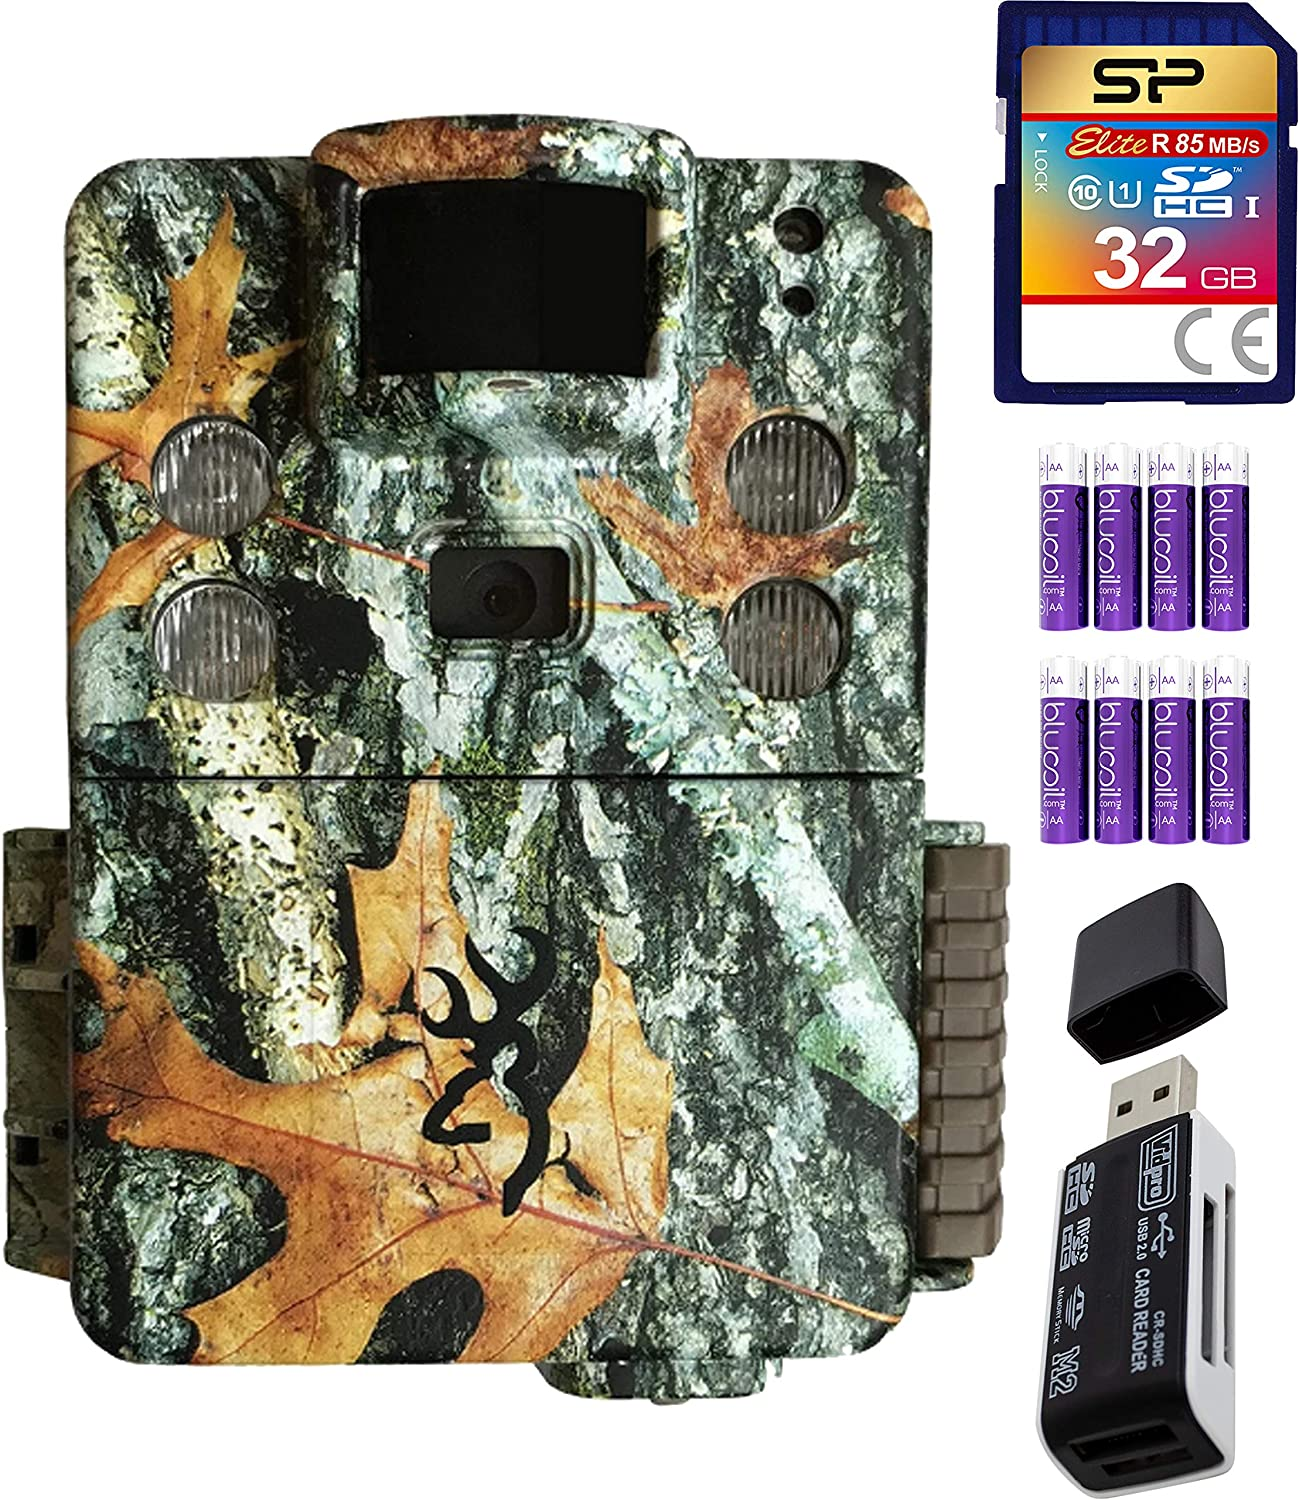 Browning Trail Cameras BTC-5HD-APX Strike Force HD Apex 18MP Game Cam (Camo) Bundle with SB 2.0 Card Reader, Silicon Power 32GB Class 10 SDHC SD Card, and Blucoil 8 AA Batteries